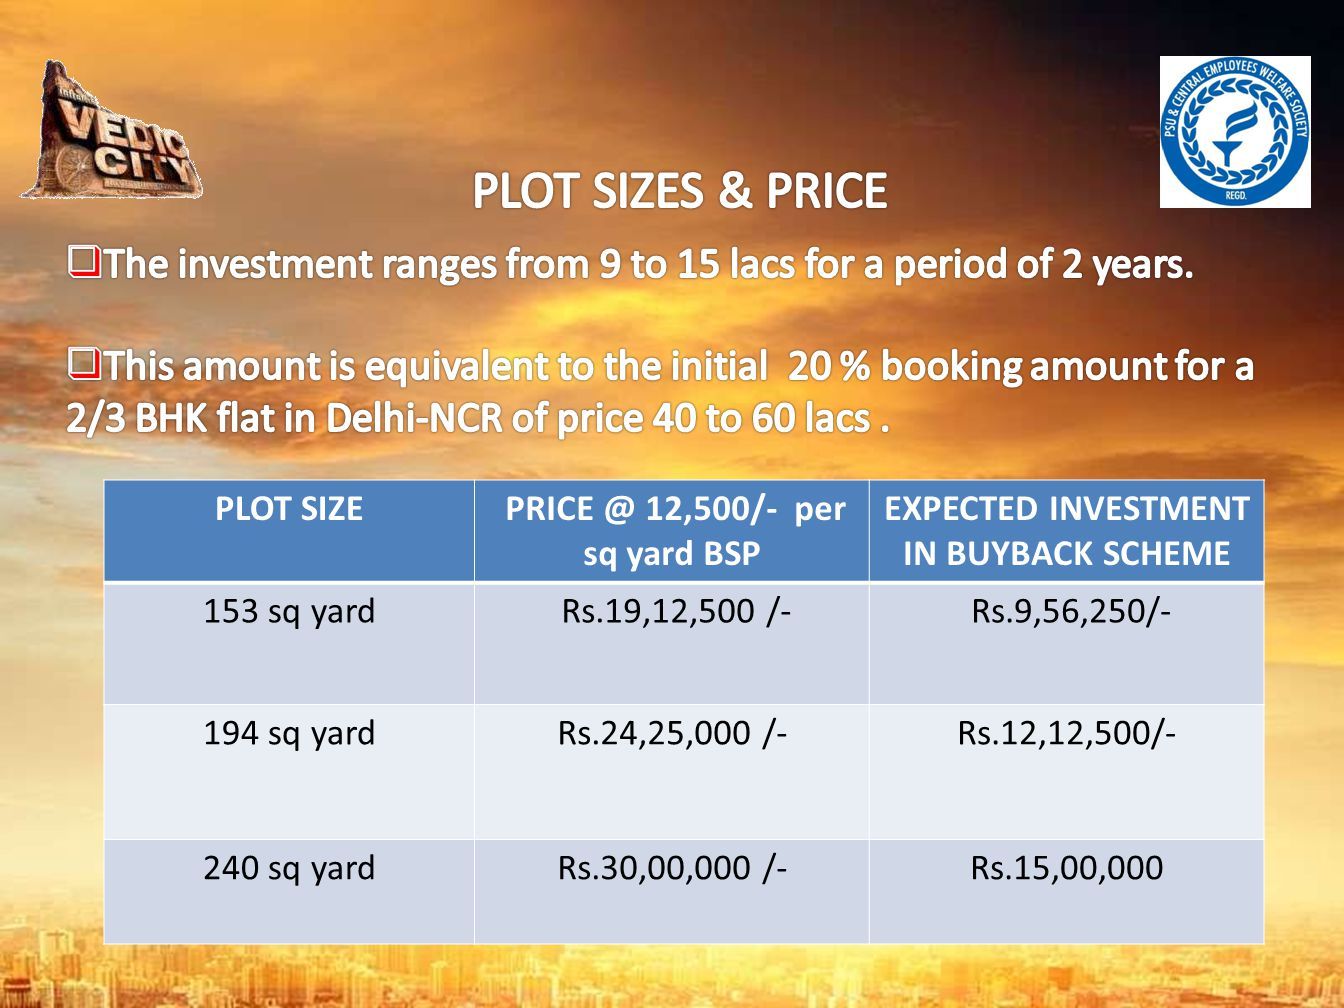 PRICE @ 12,500/- per sq yard BSP EXPECTED INVESTMENT IN BUYBACK SCHEME